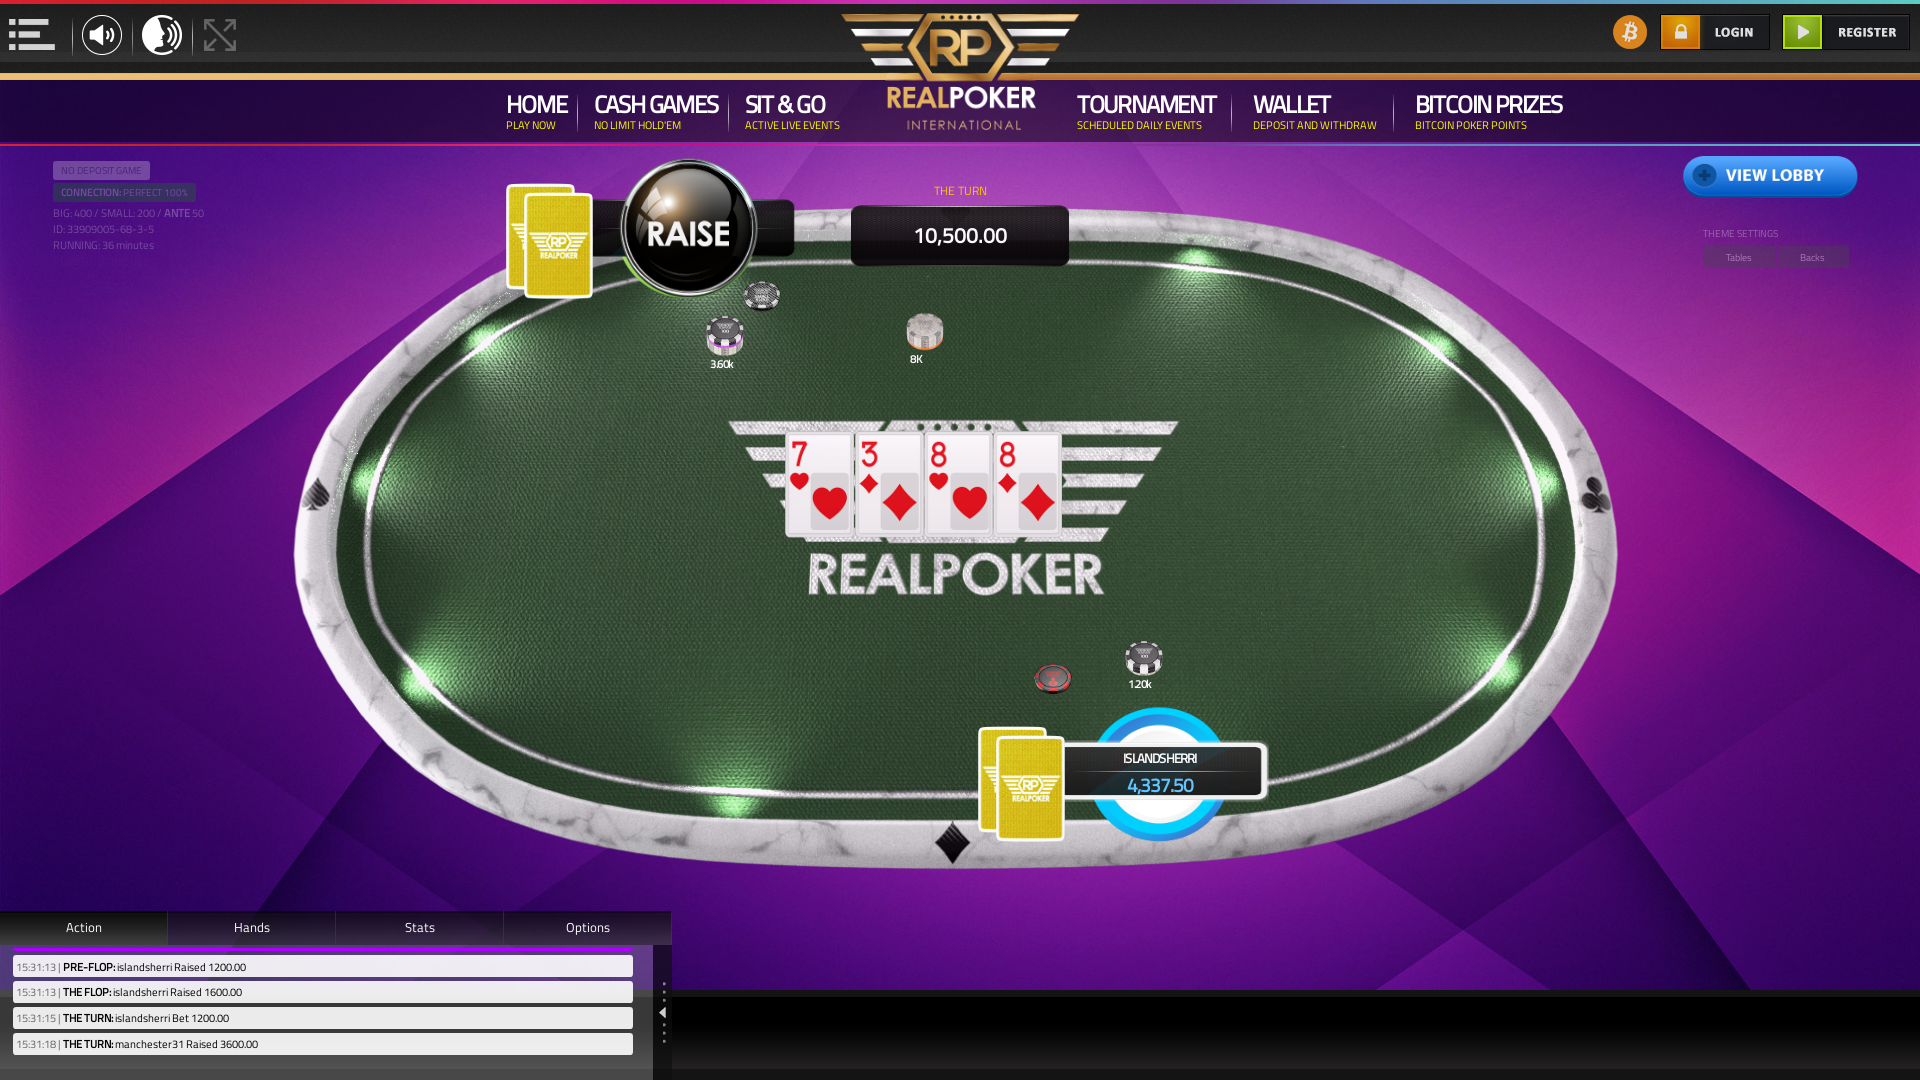 Real poker 10 player table in the 36th minute